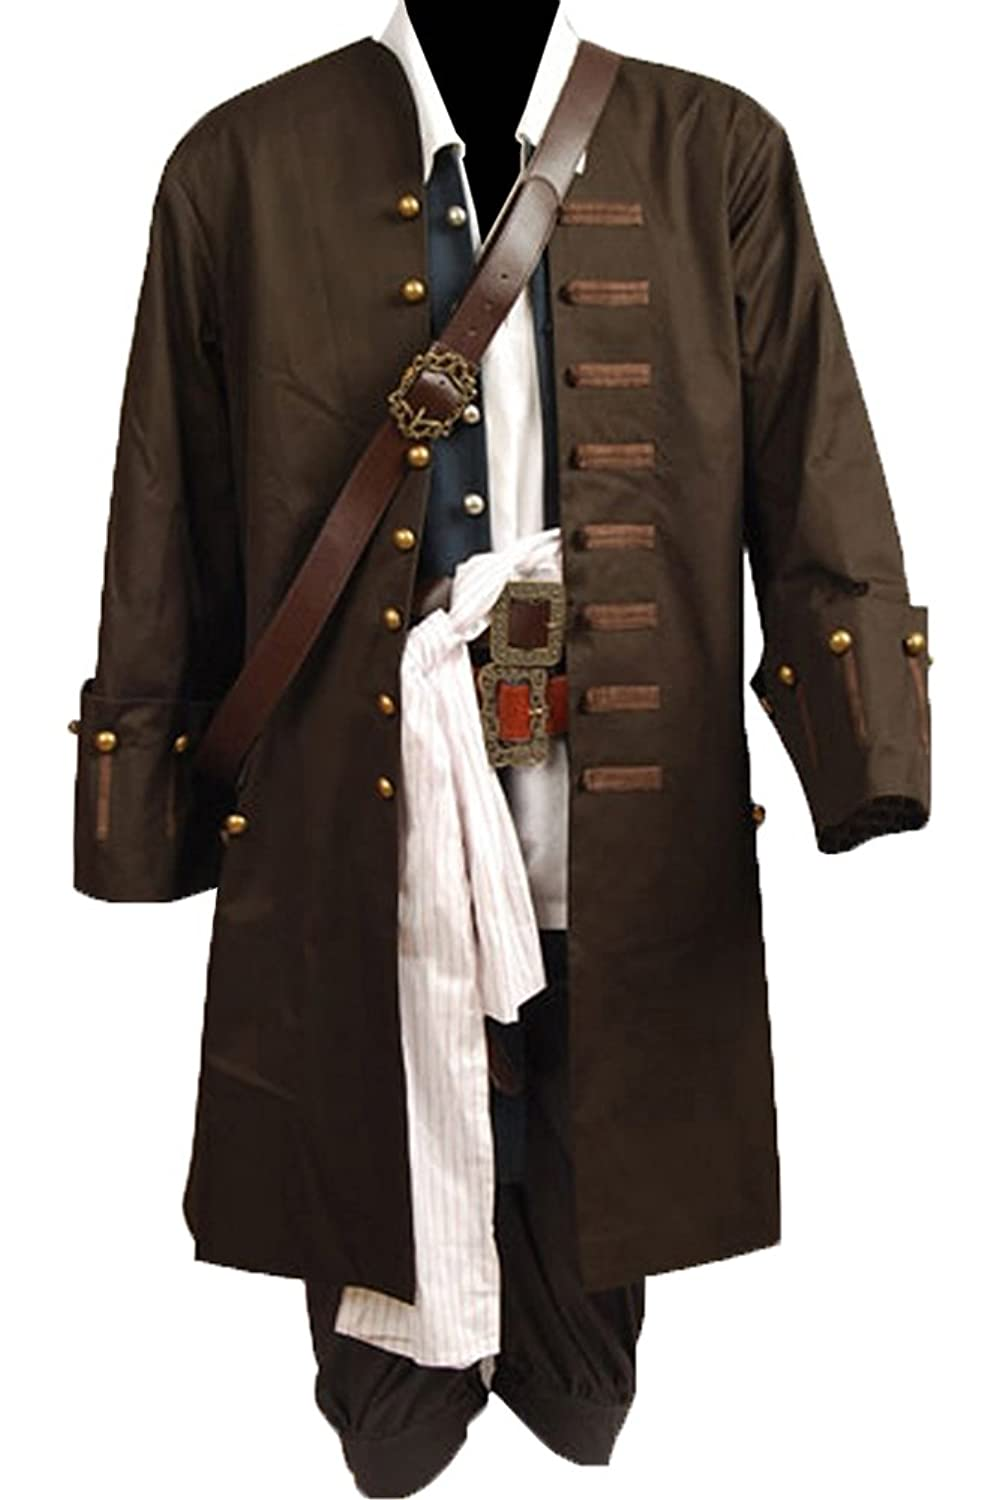 Pirates of the Caribbean Barbossa Jacket Costume Cosplay Halloween Show New